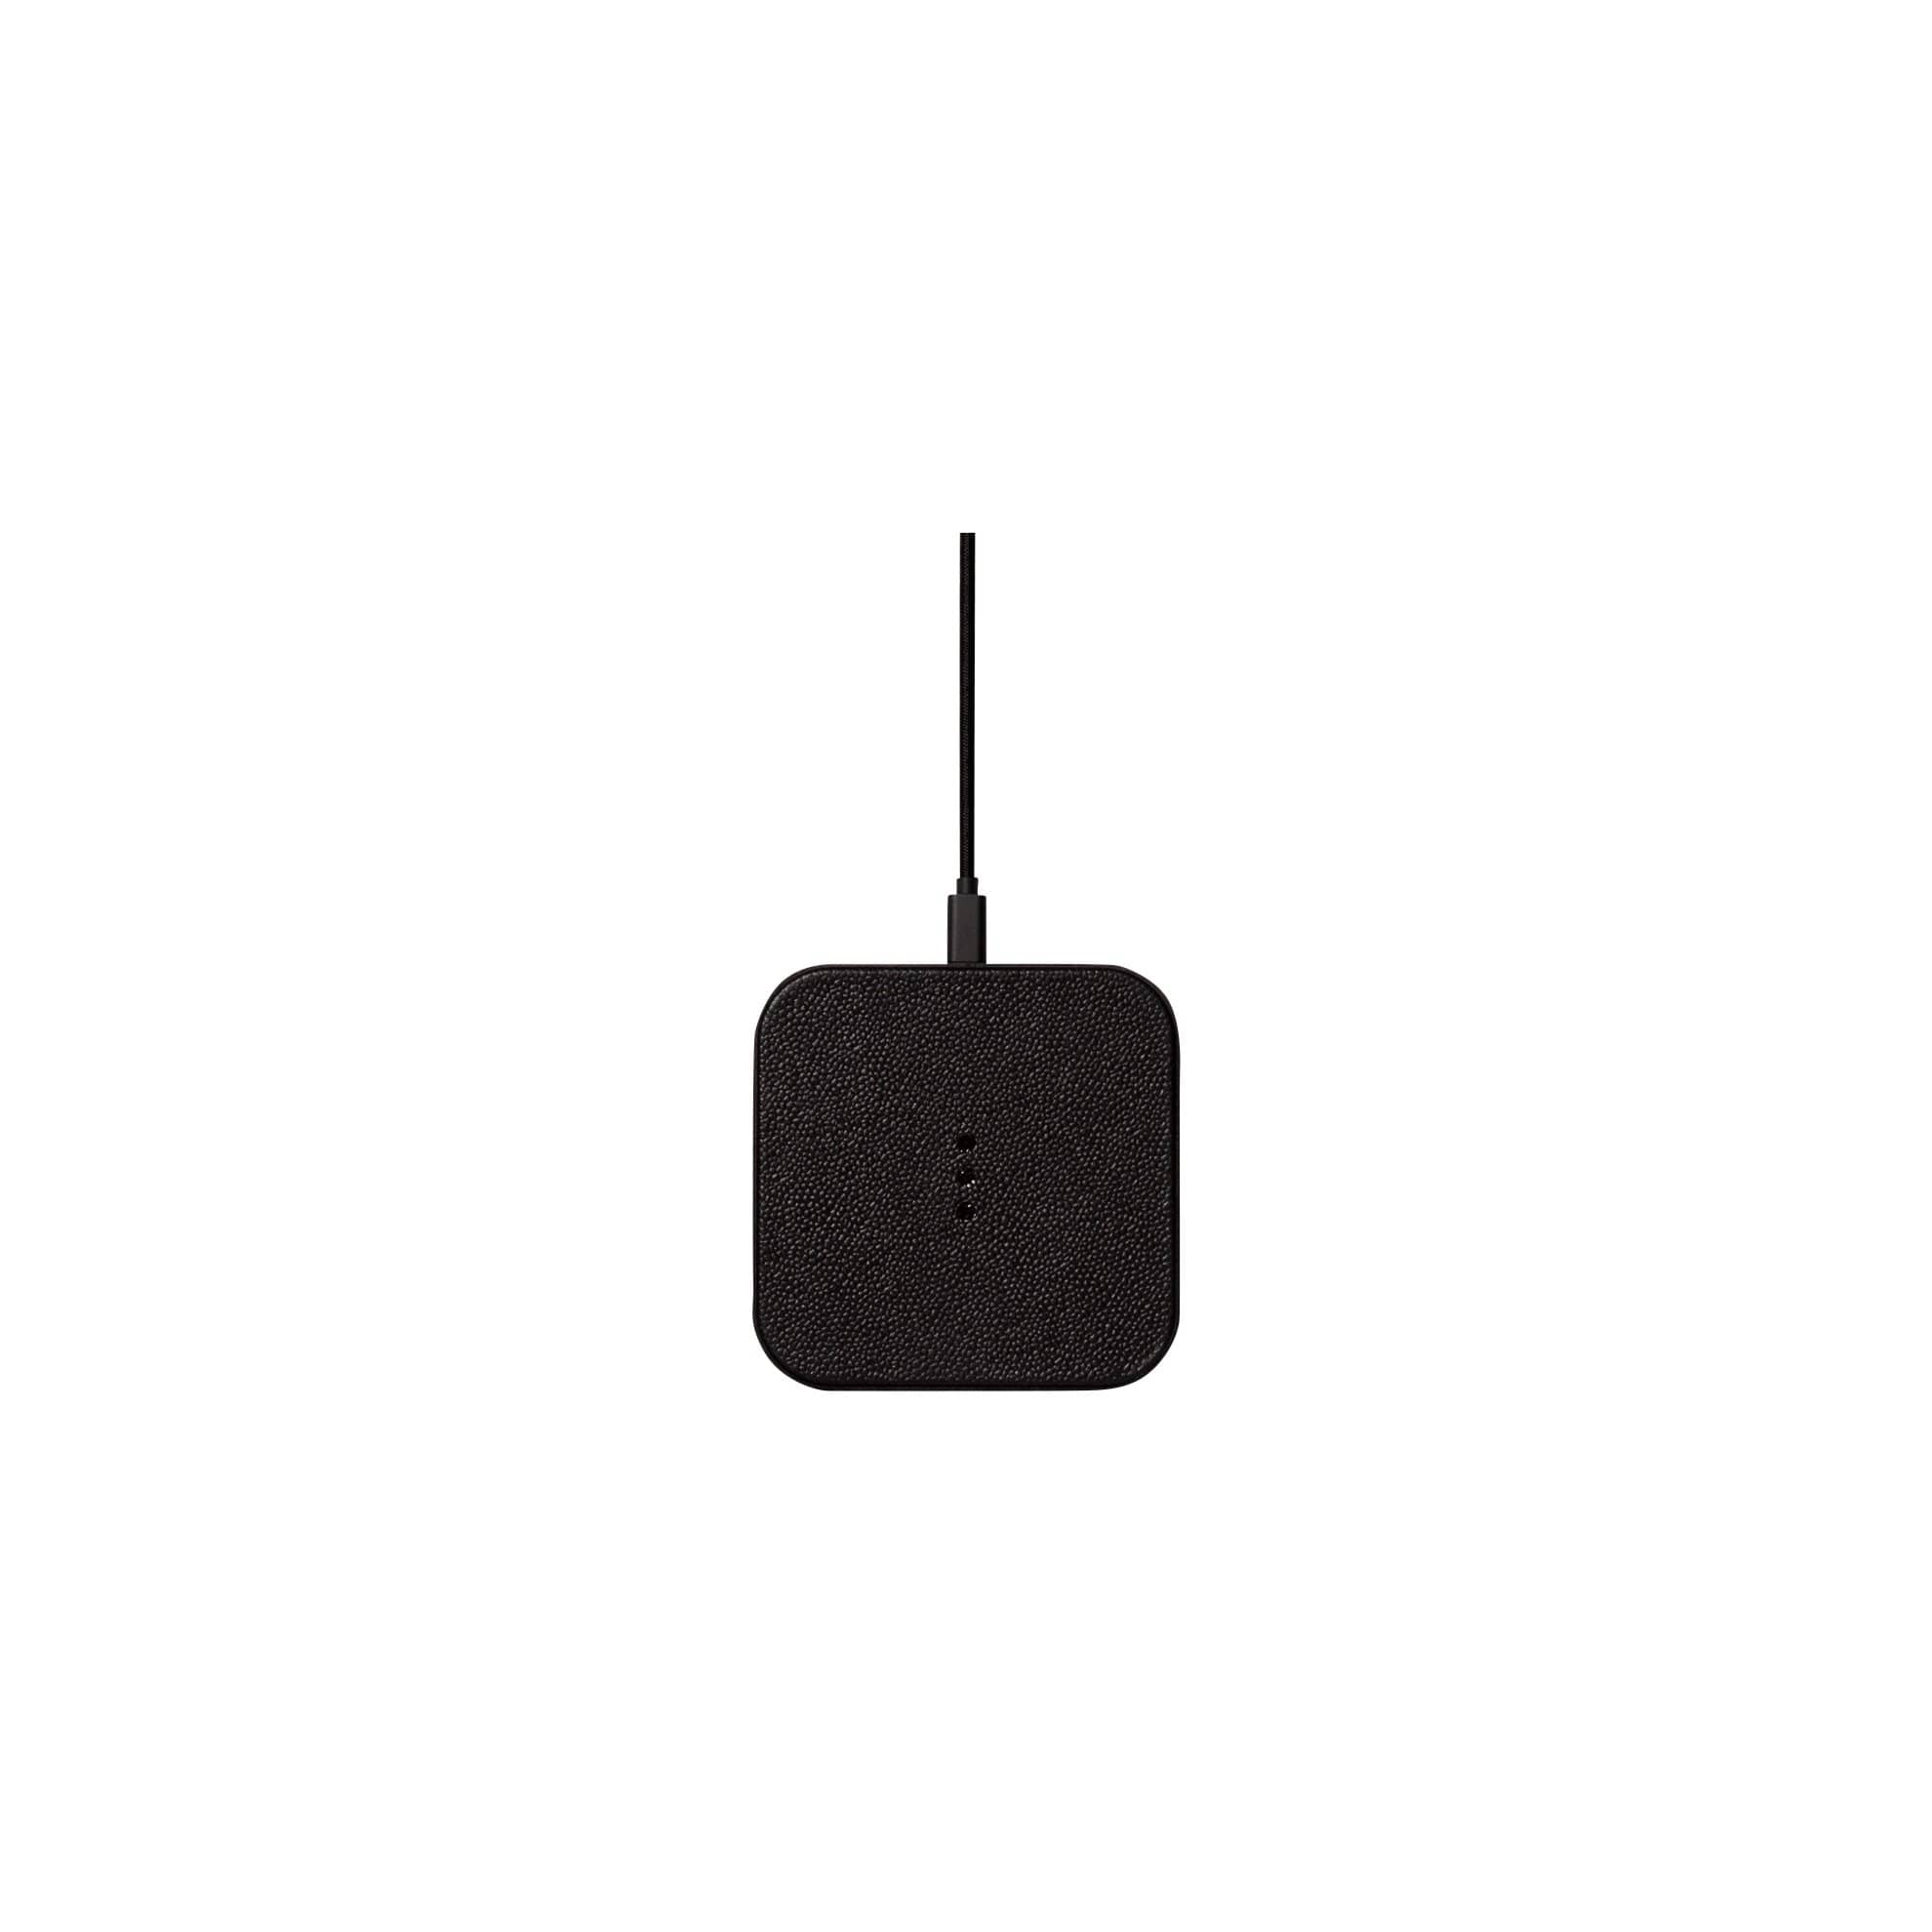 CATCH:1 Wireless Charger in Black